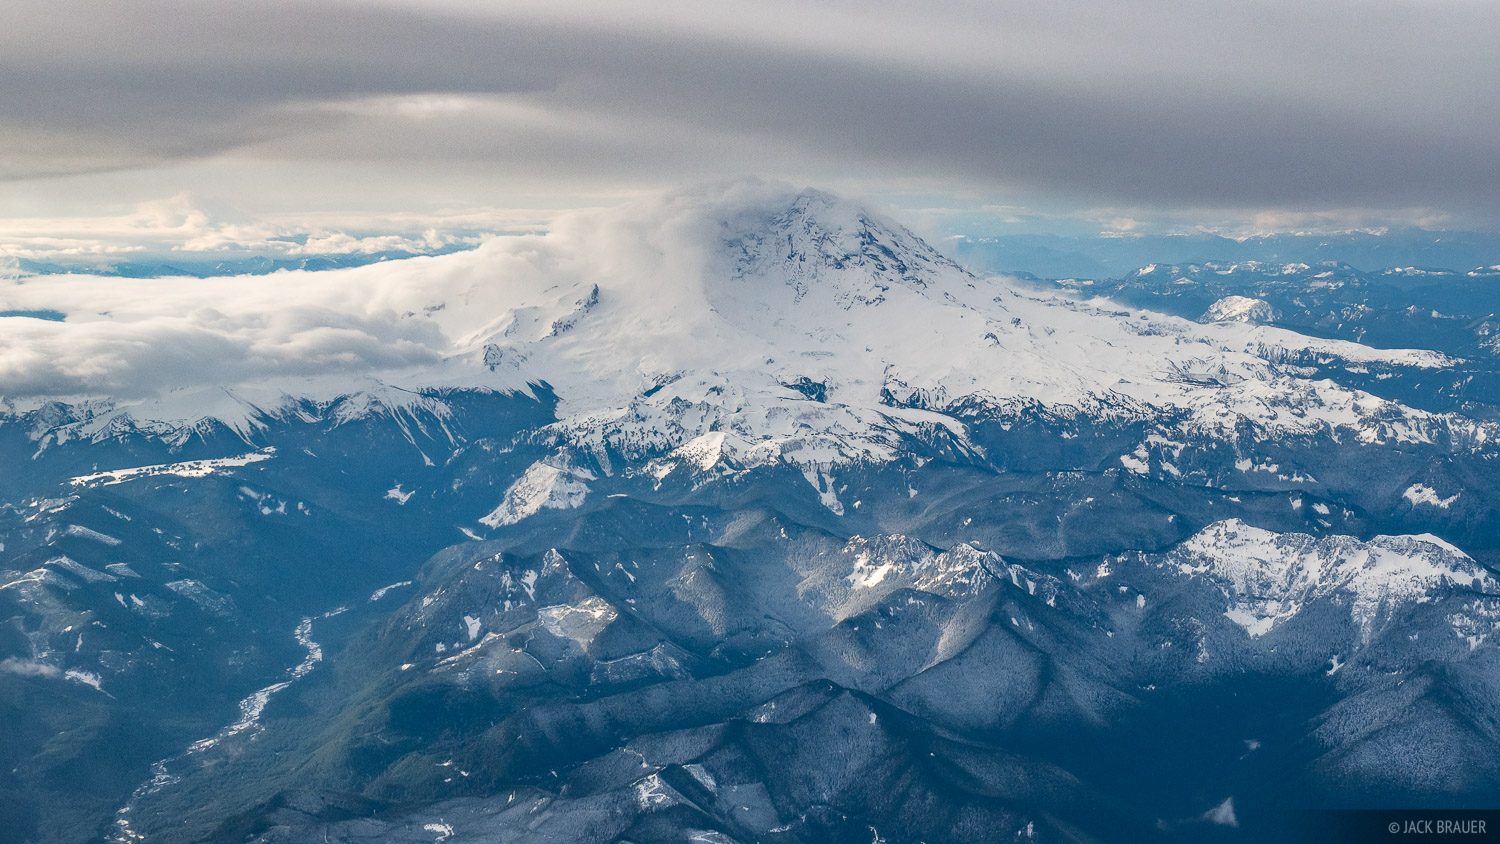 Mt. Rainier,Washington,aerial, photo